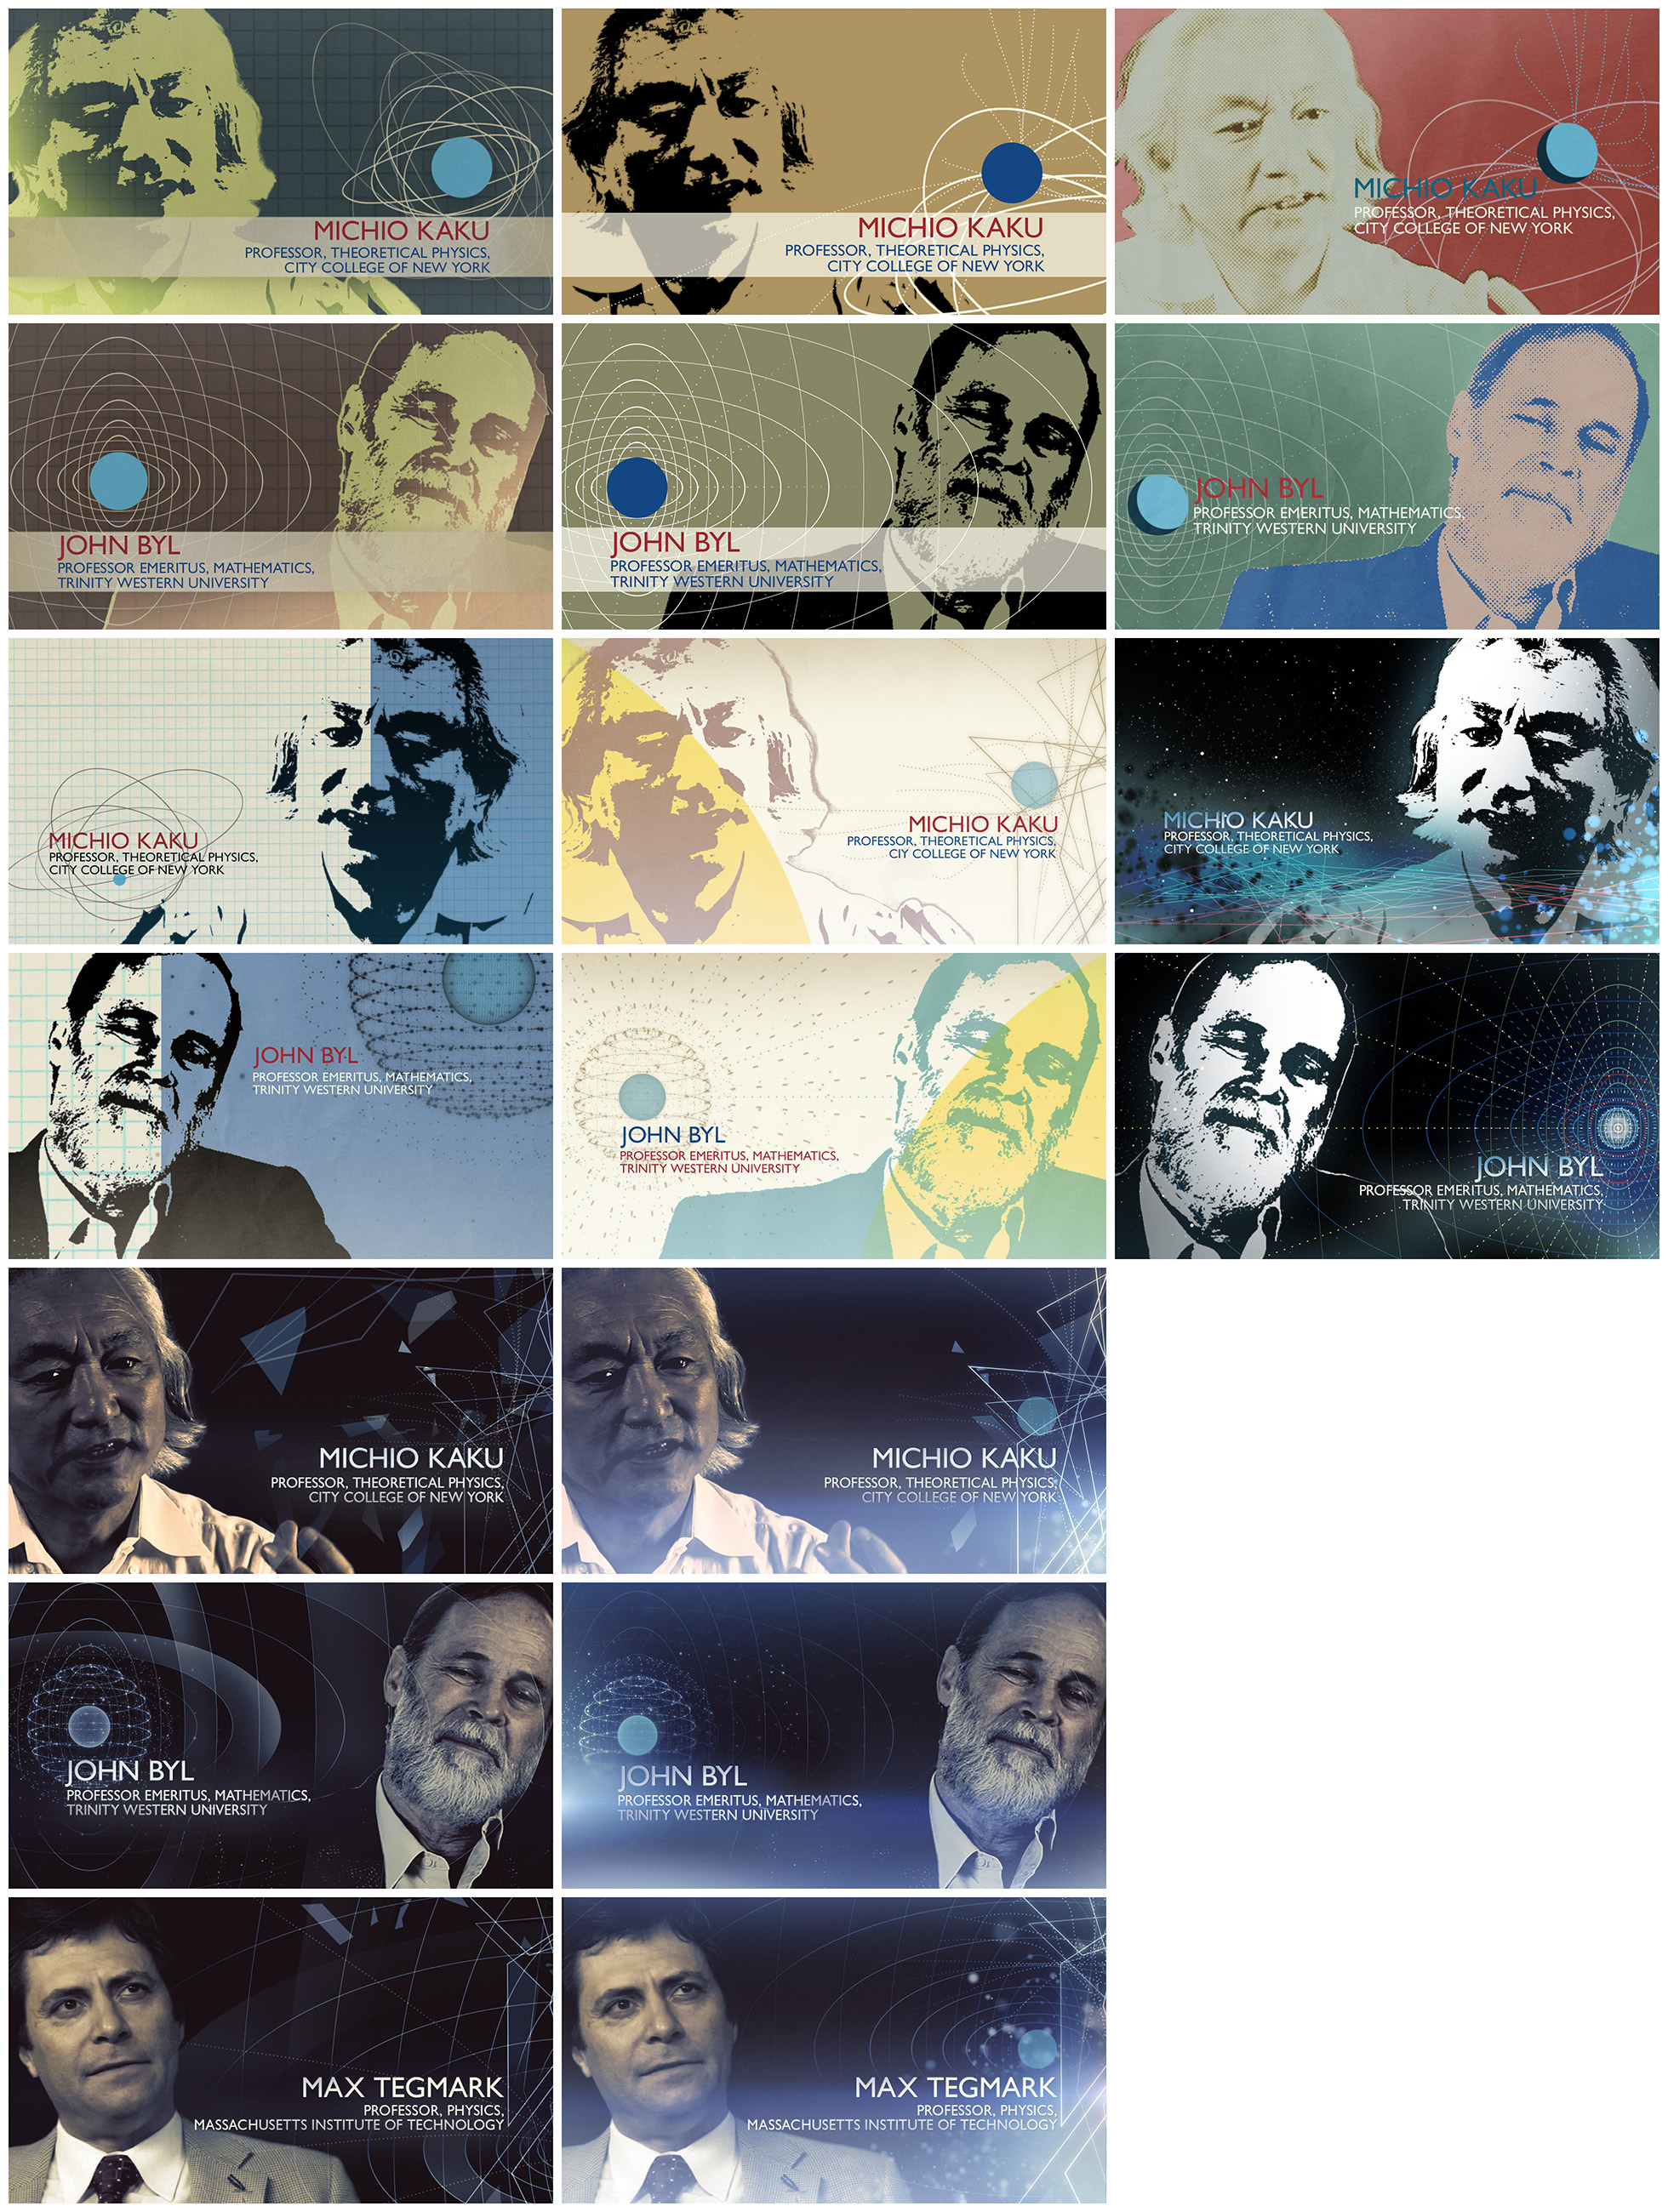 Prin_interview_styleframes style frames - movie posters - logo design